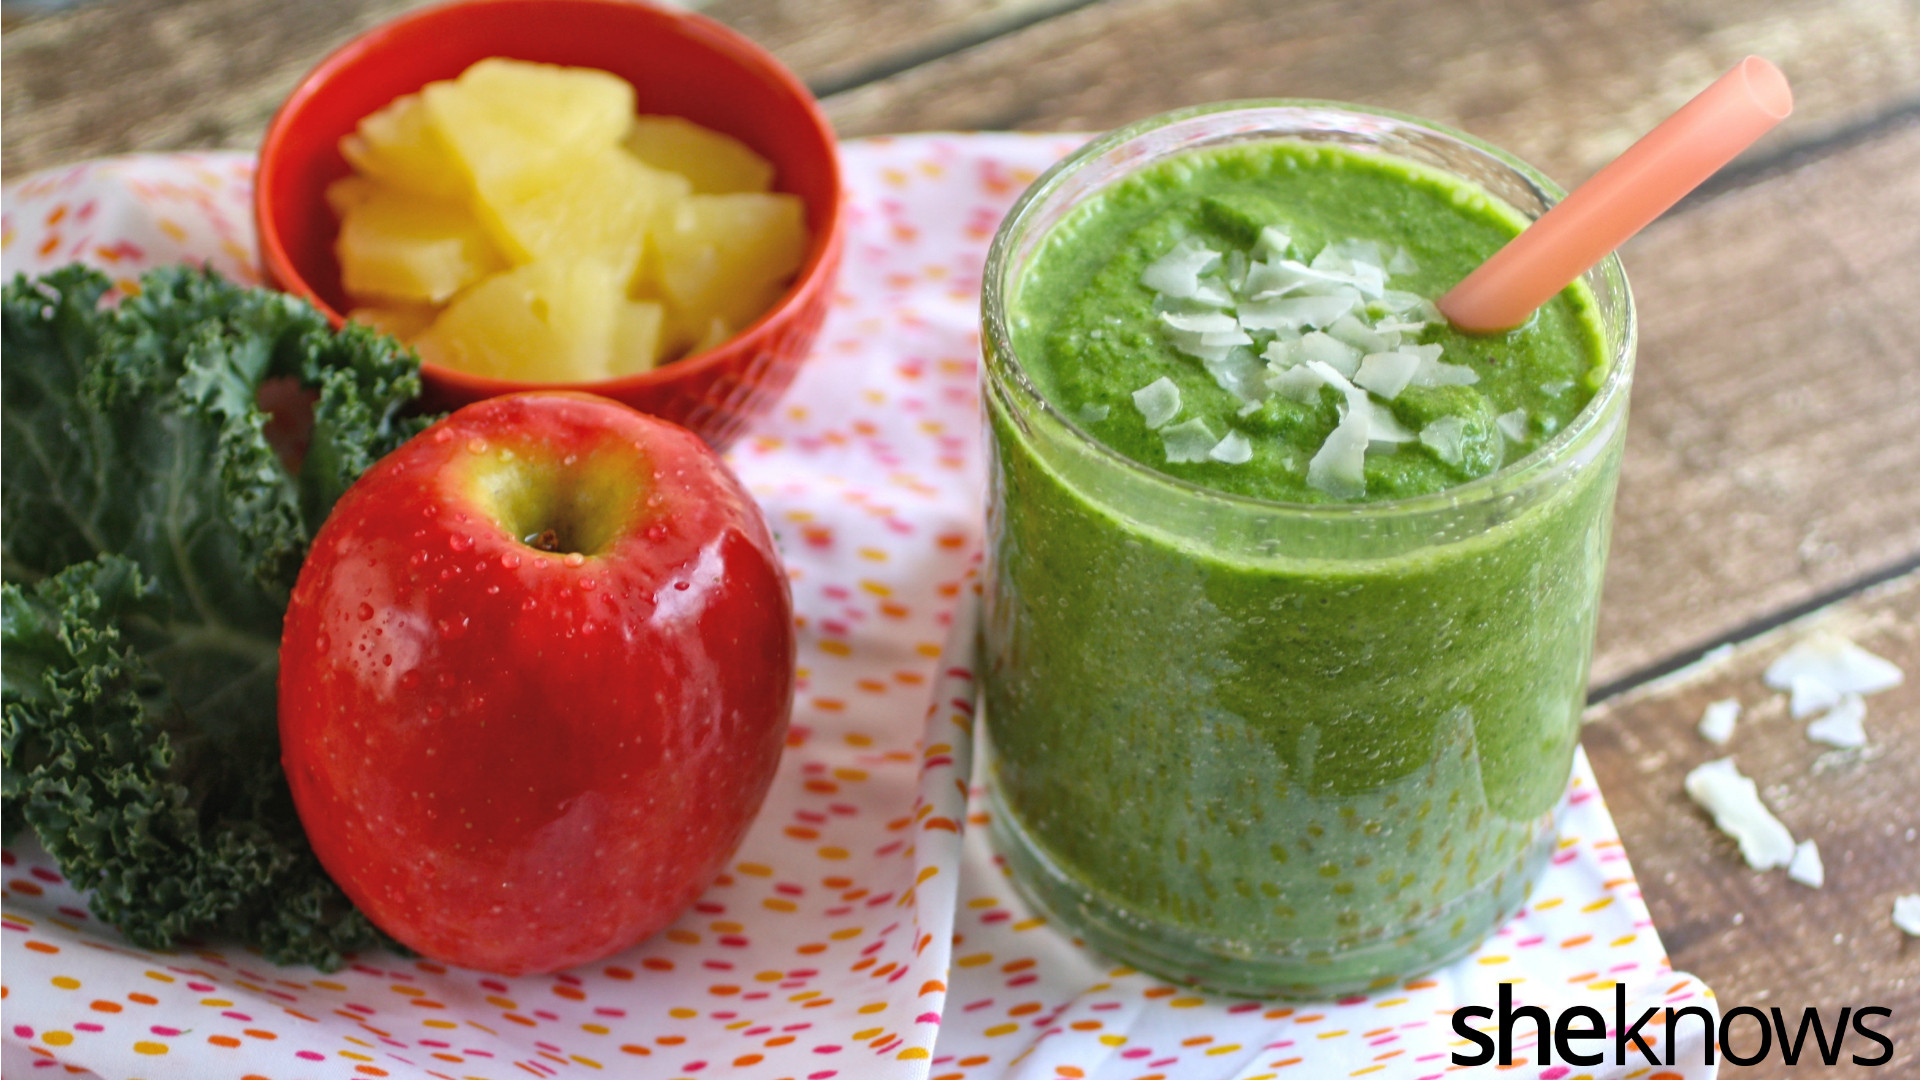 Healthy Smoothies To Make  These Green Smoothie Recipes Have the Magical Power to